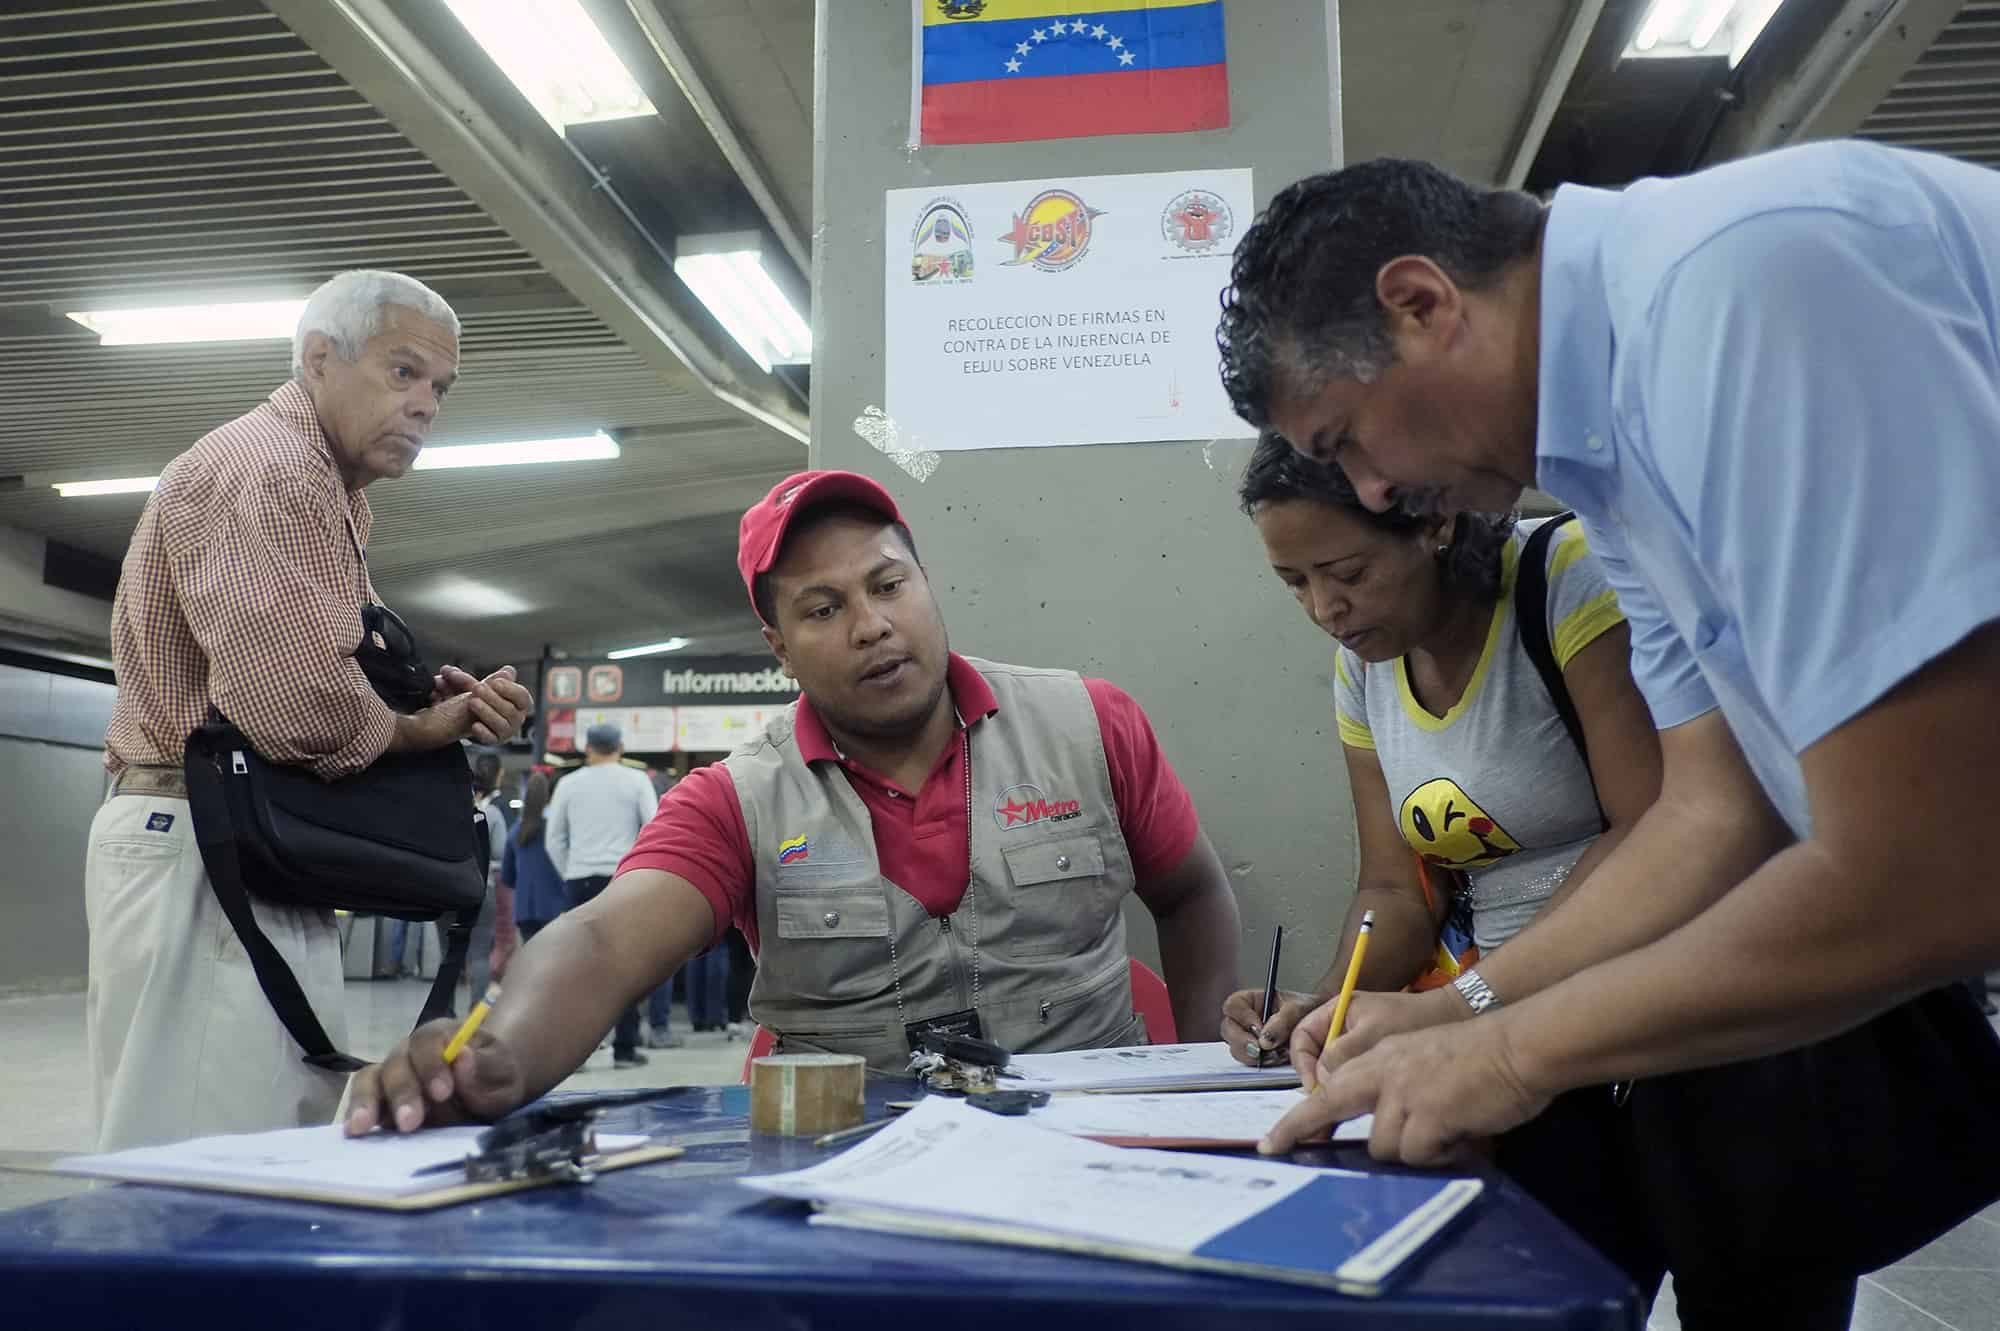 People sign documents in Caracas to show their support for the Venezuelan government after the U.S. imposed sanctions on Venezuelan officials, March 9, 2015.